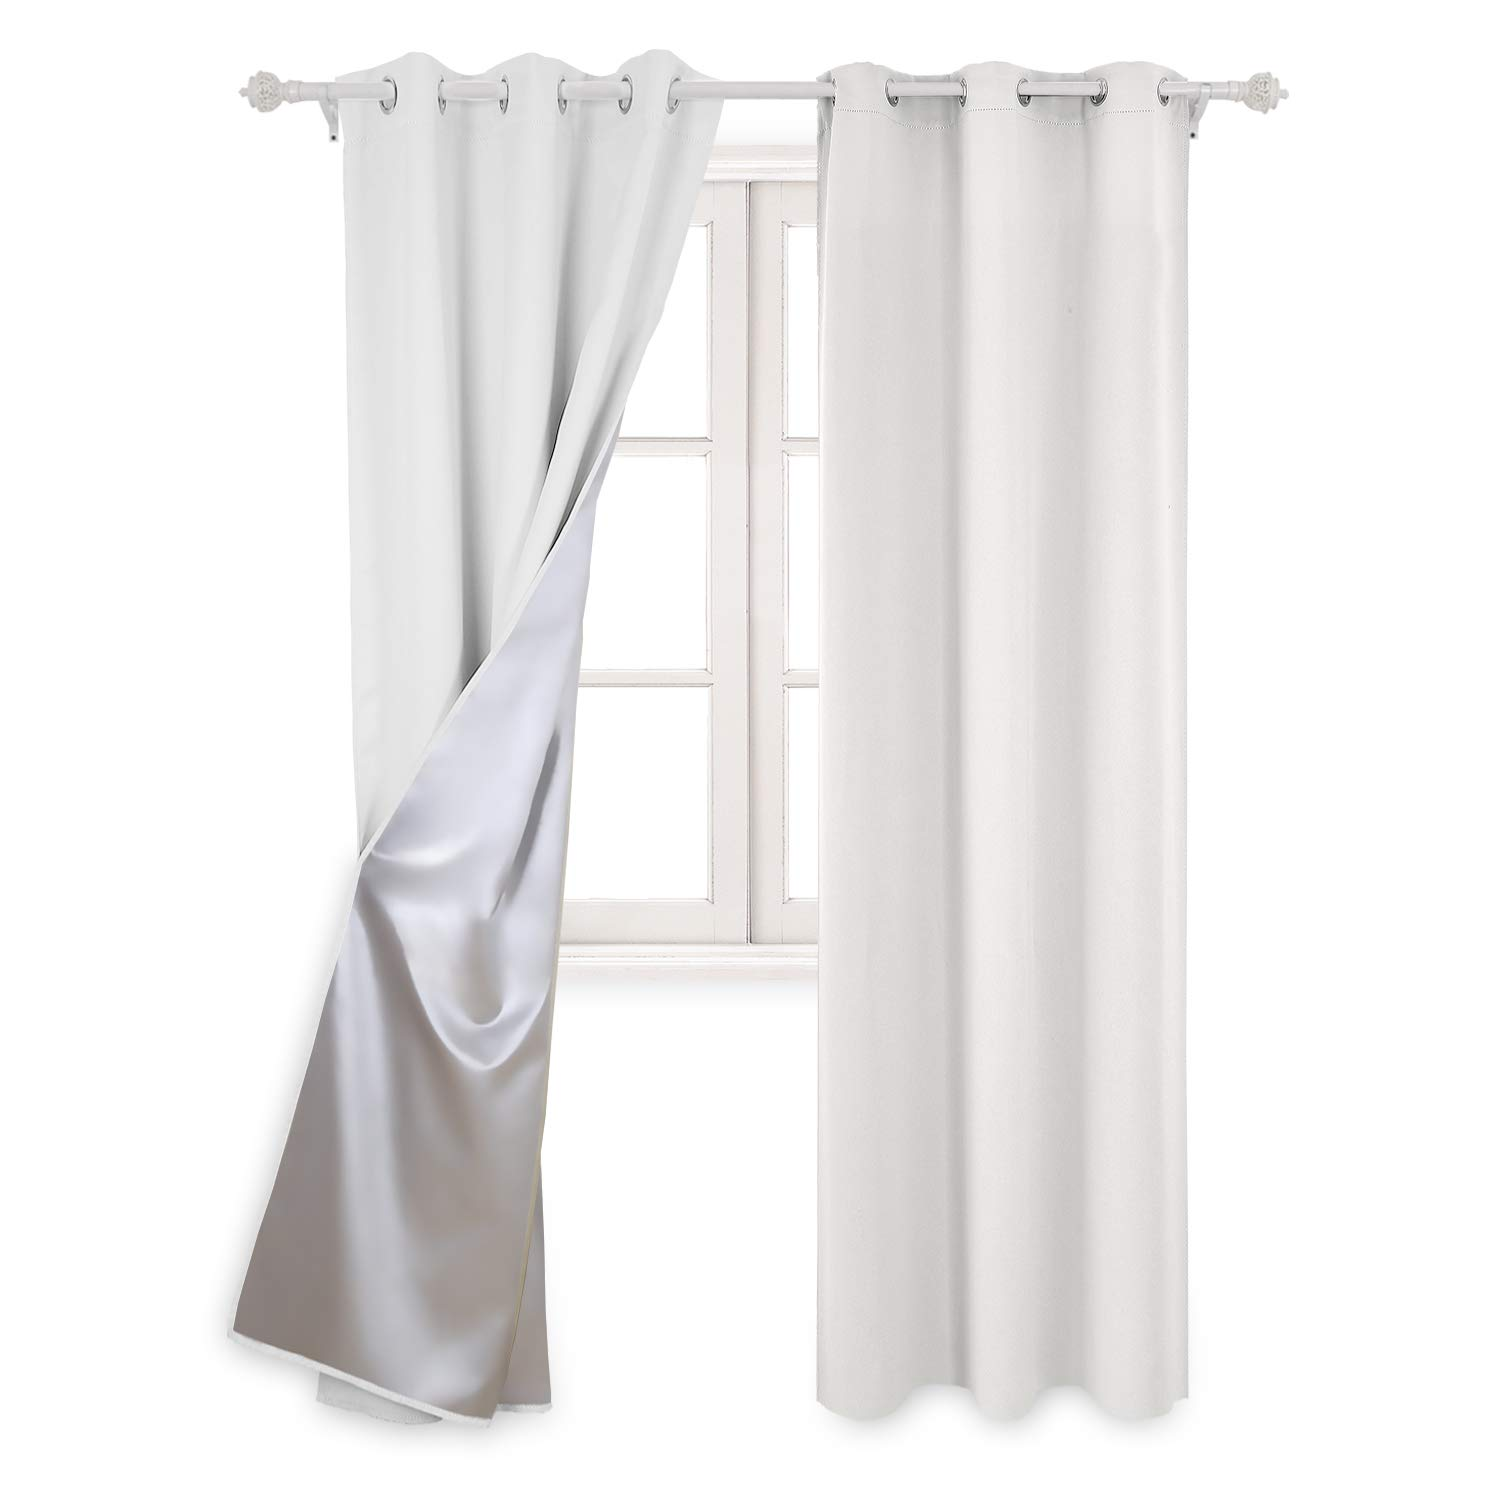 Deconovo Greyish White Thermal Insulated Blackout Curtains Grommet Curtains with Silver Coating for Bedroom 42 by 95 inch 2 Panels